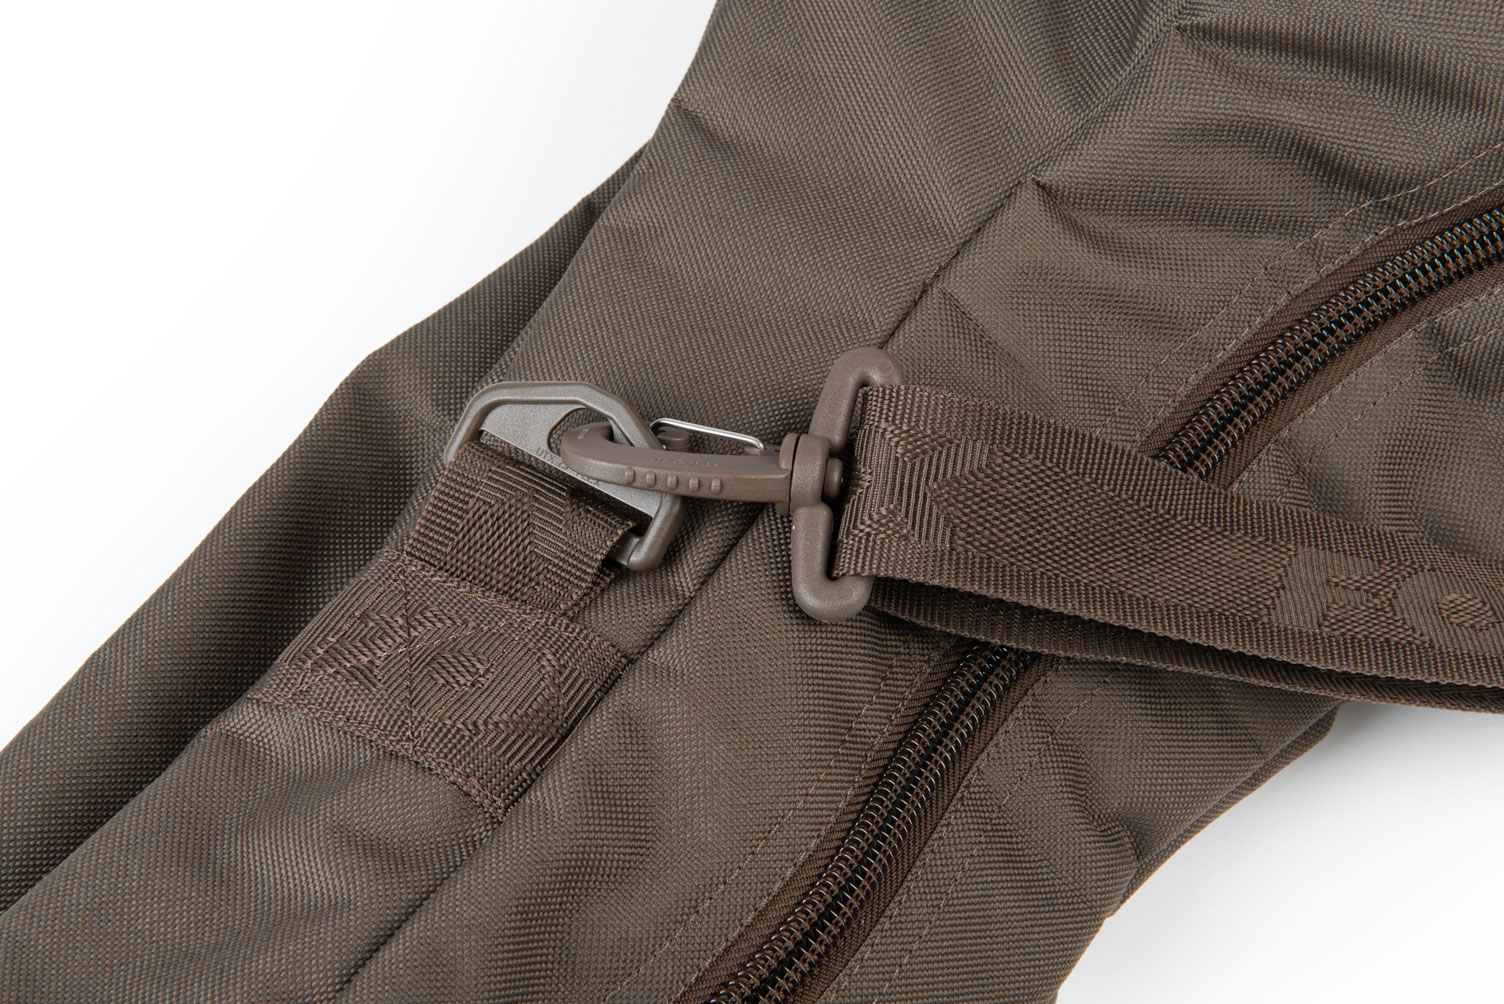 explorer_3_rod_bag_landing_strap_fixing_detailjpg